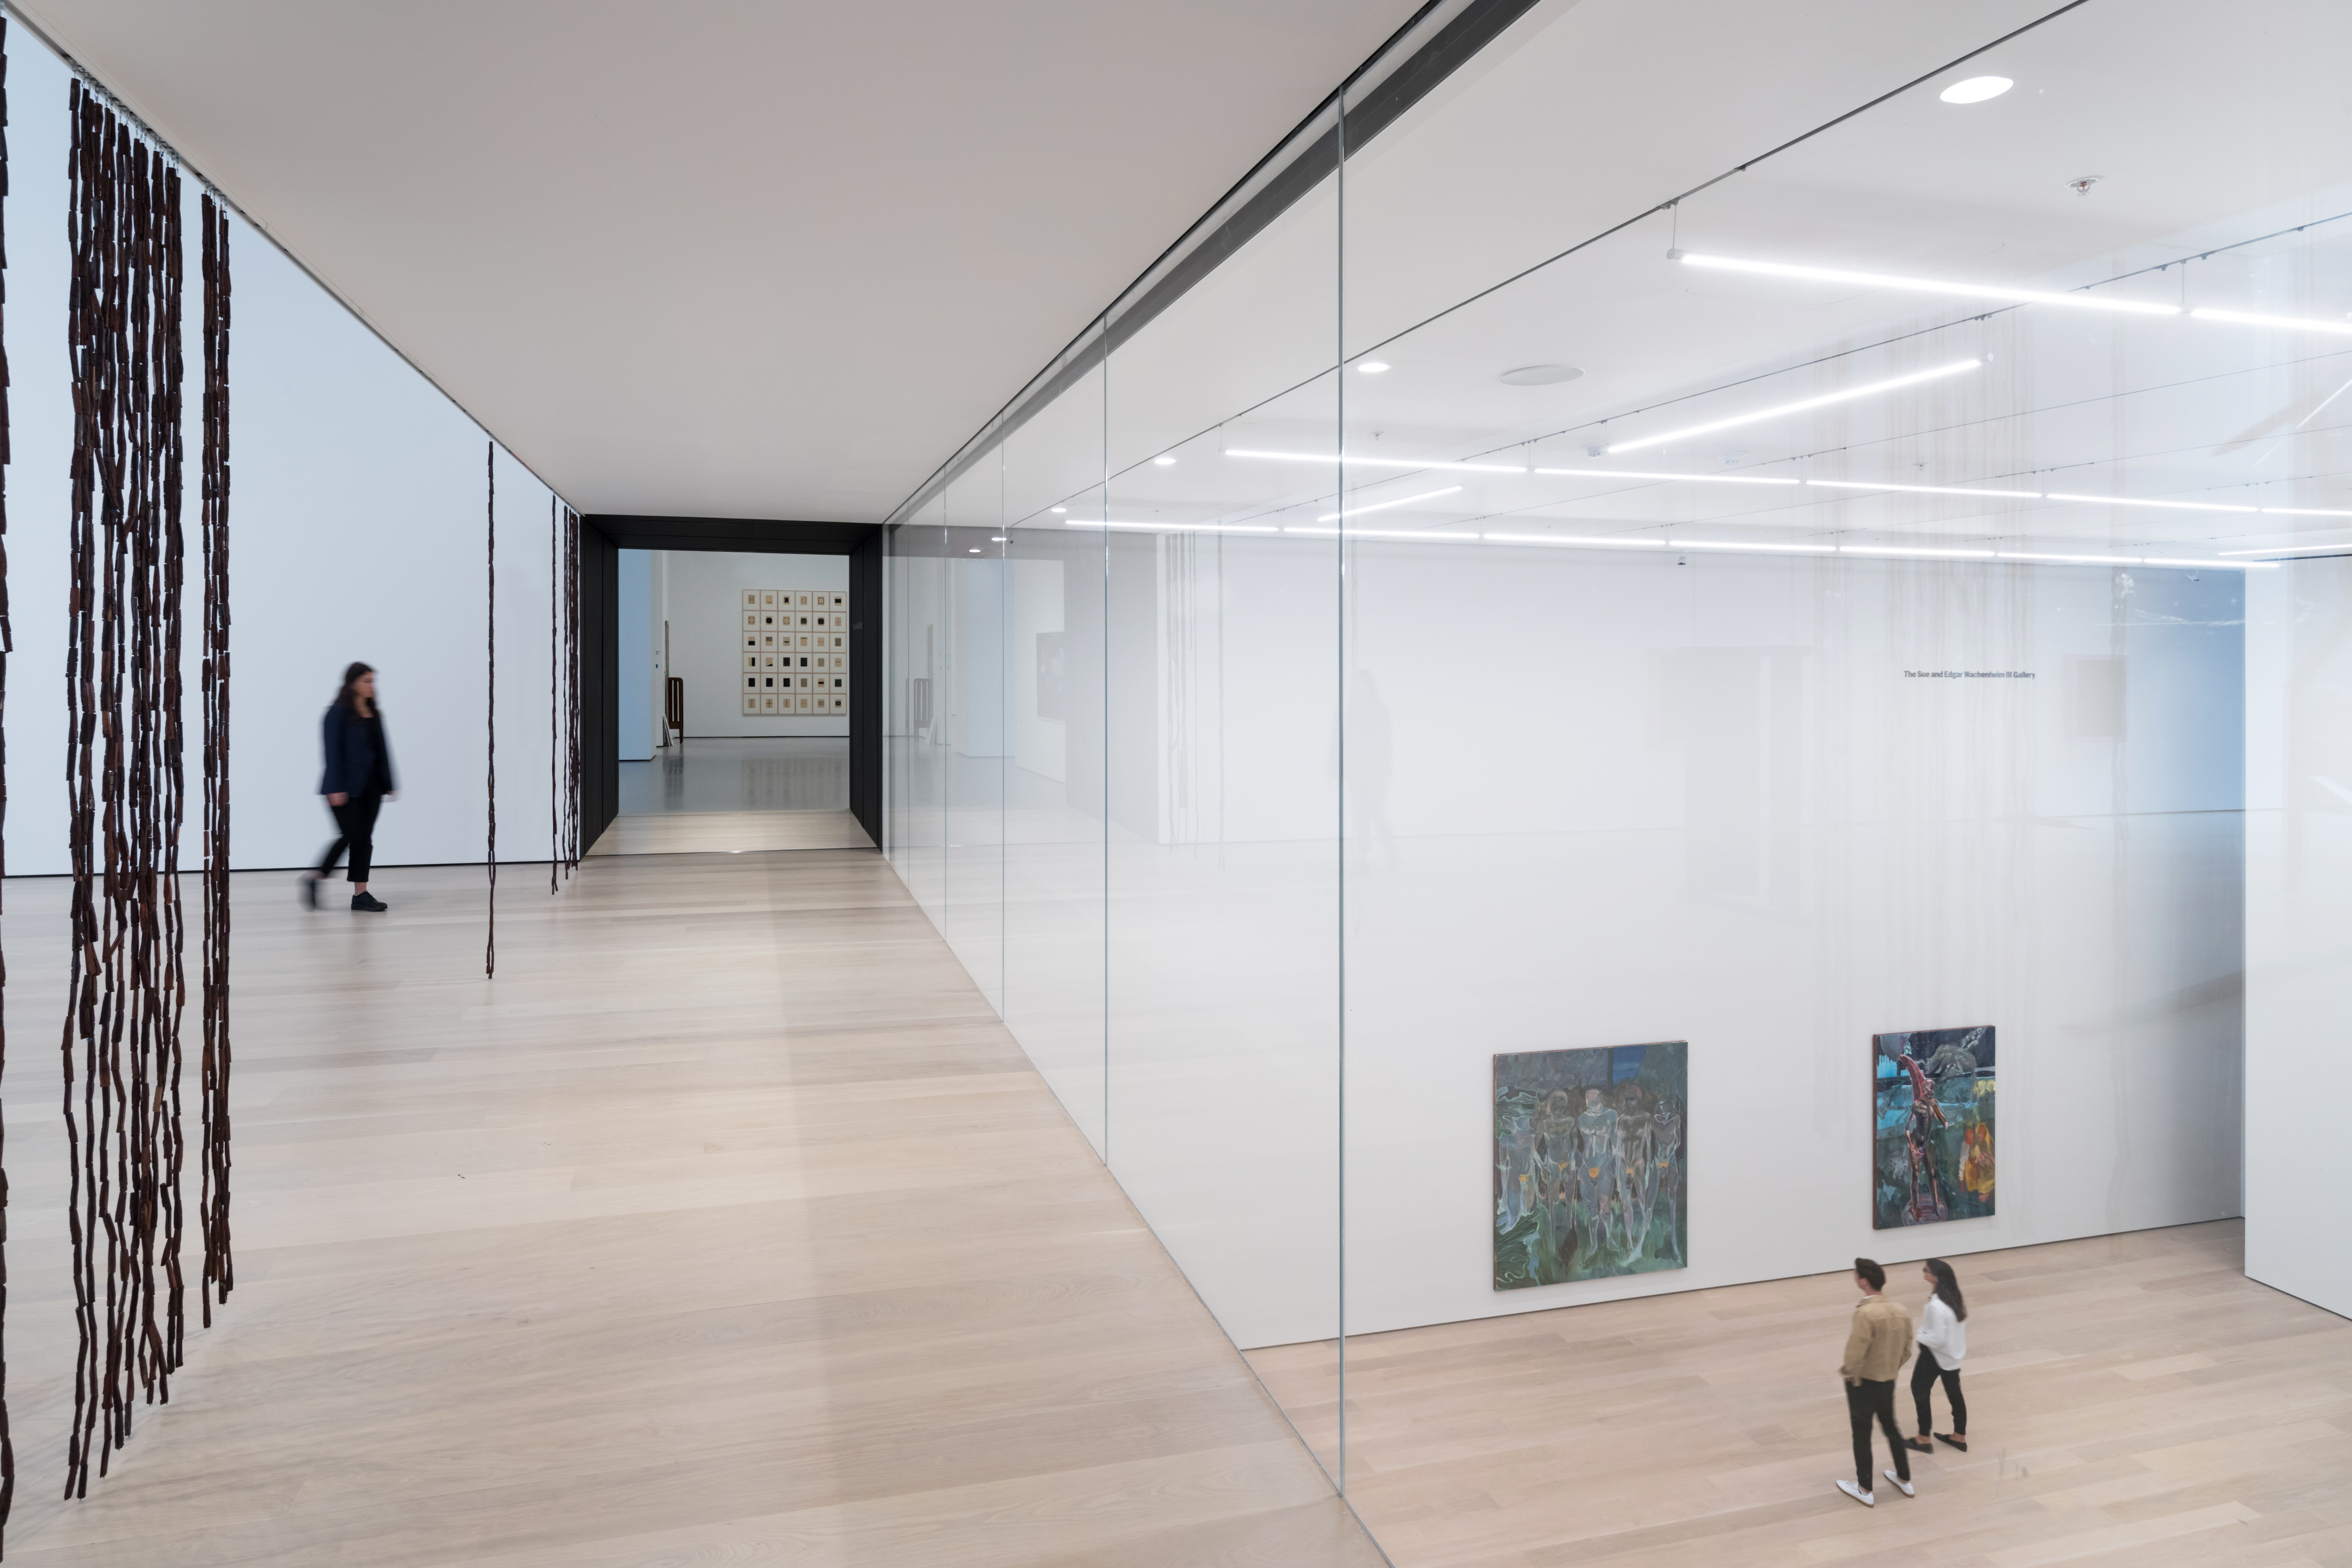 <p>MoMa Fase 2. Installation view of Daylit gallery 212, Sheela Gowda's of all people, overlooking Projects Gallery, featuring Projects 110: Michael Armitage, The Museum of Modern Art Beeld Iwan Baan. Courtesey of MoMa</p>